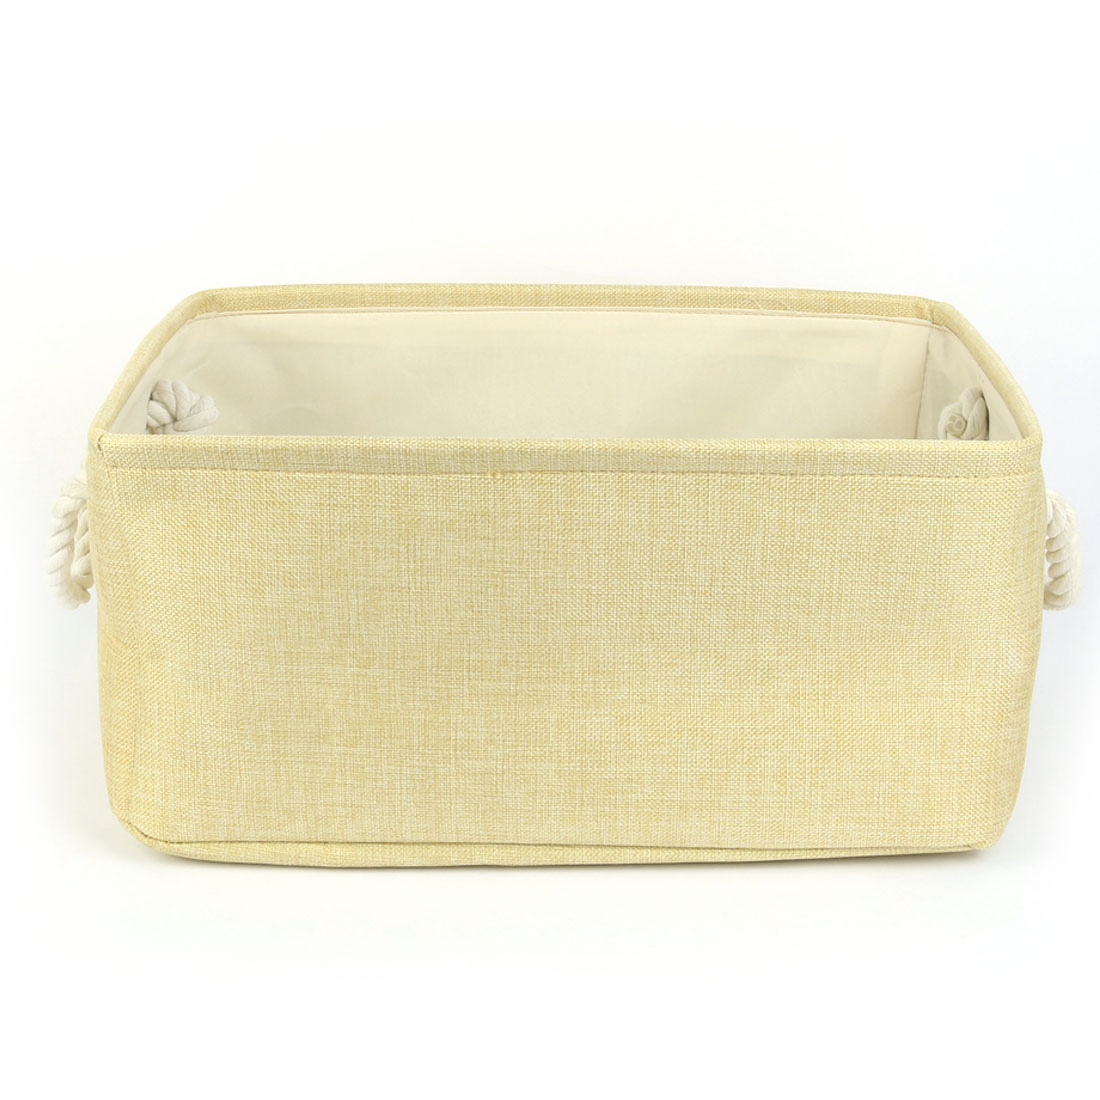 Household Fabric Storage Bin Basket Closet Blanket Box Container Organizer Beige